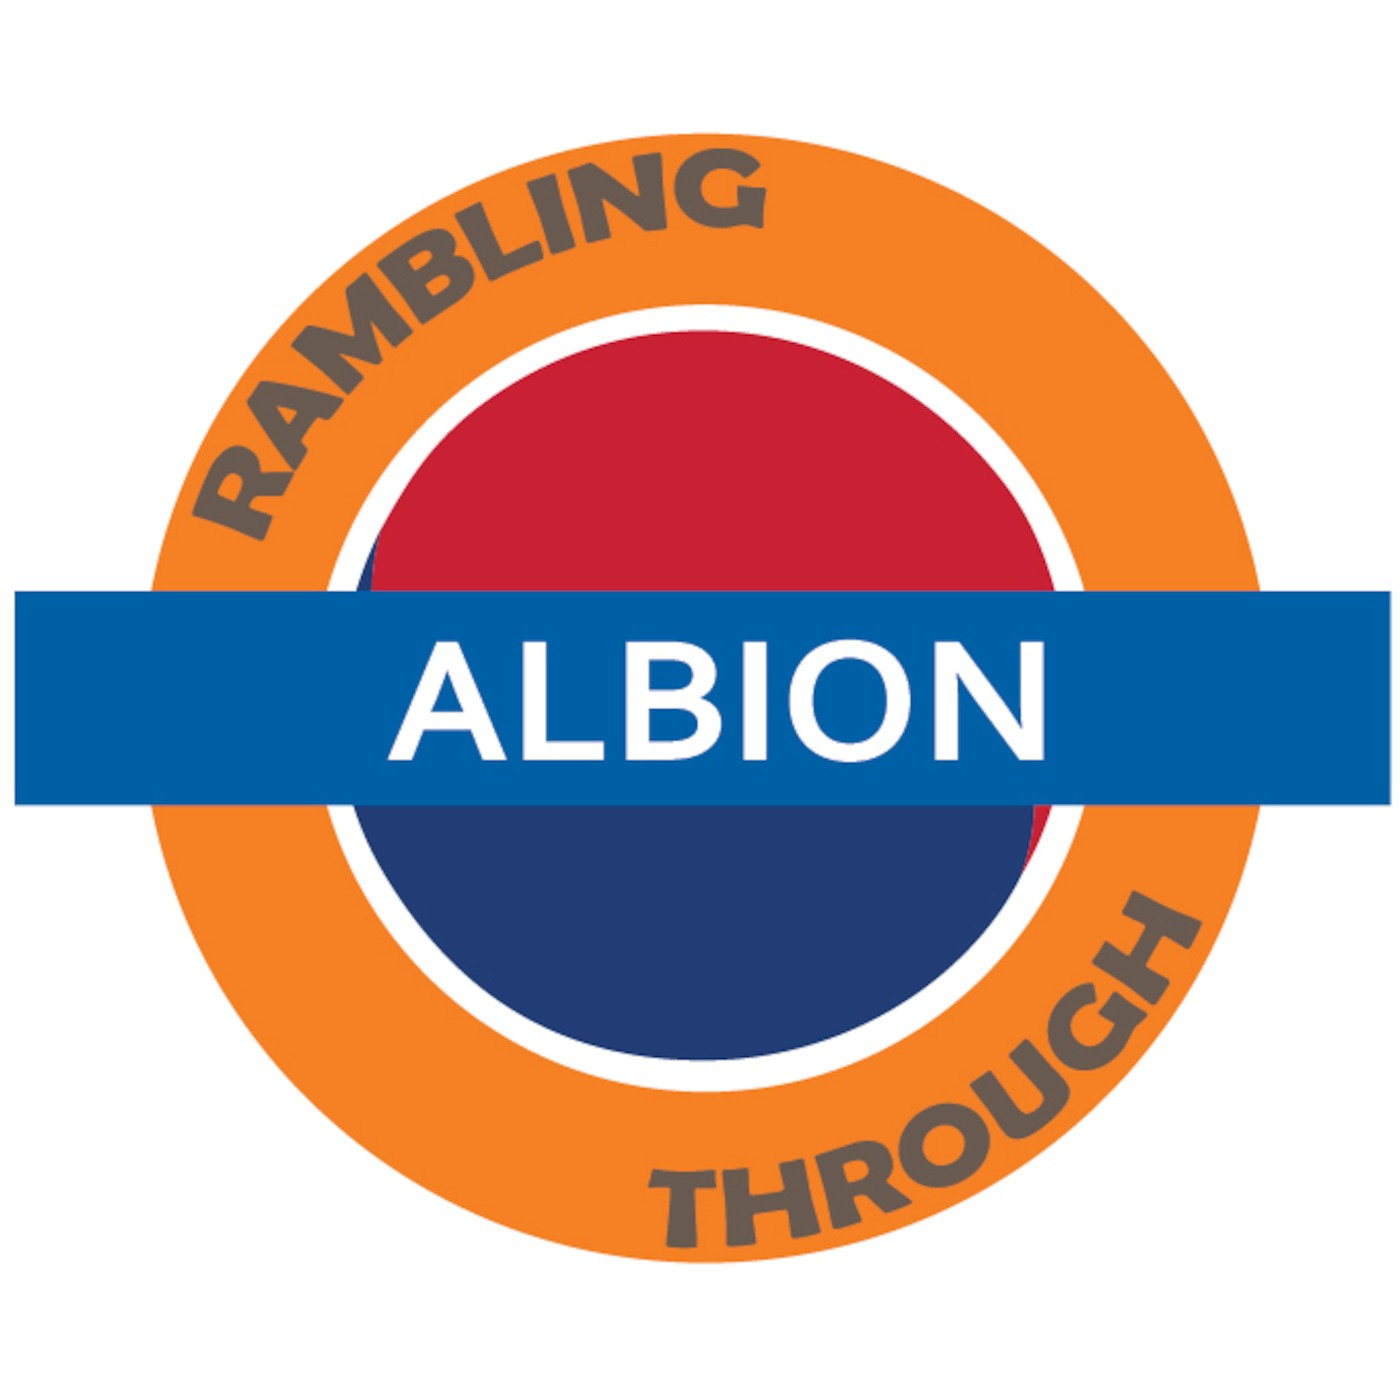 Rambling Through Albion